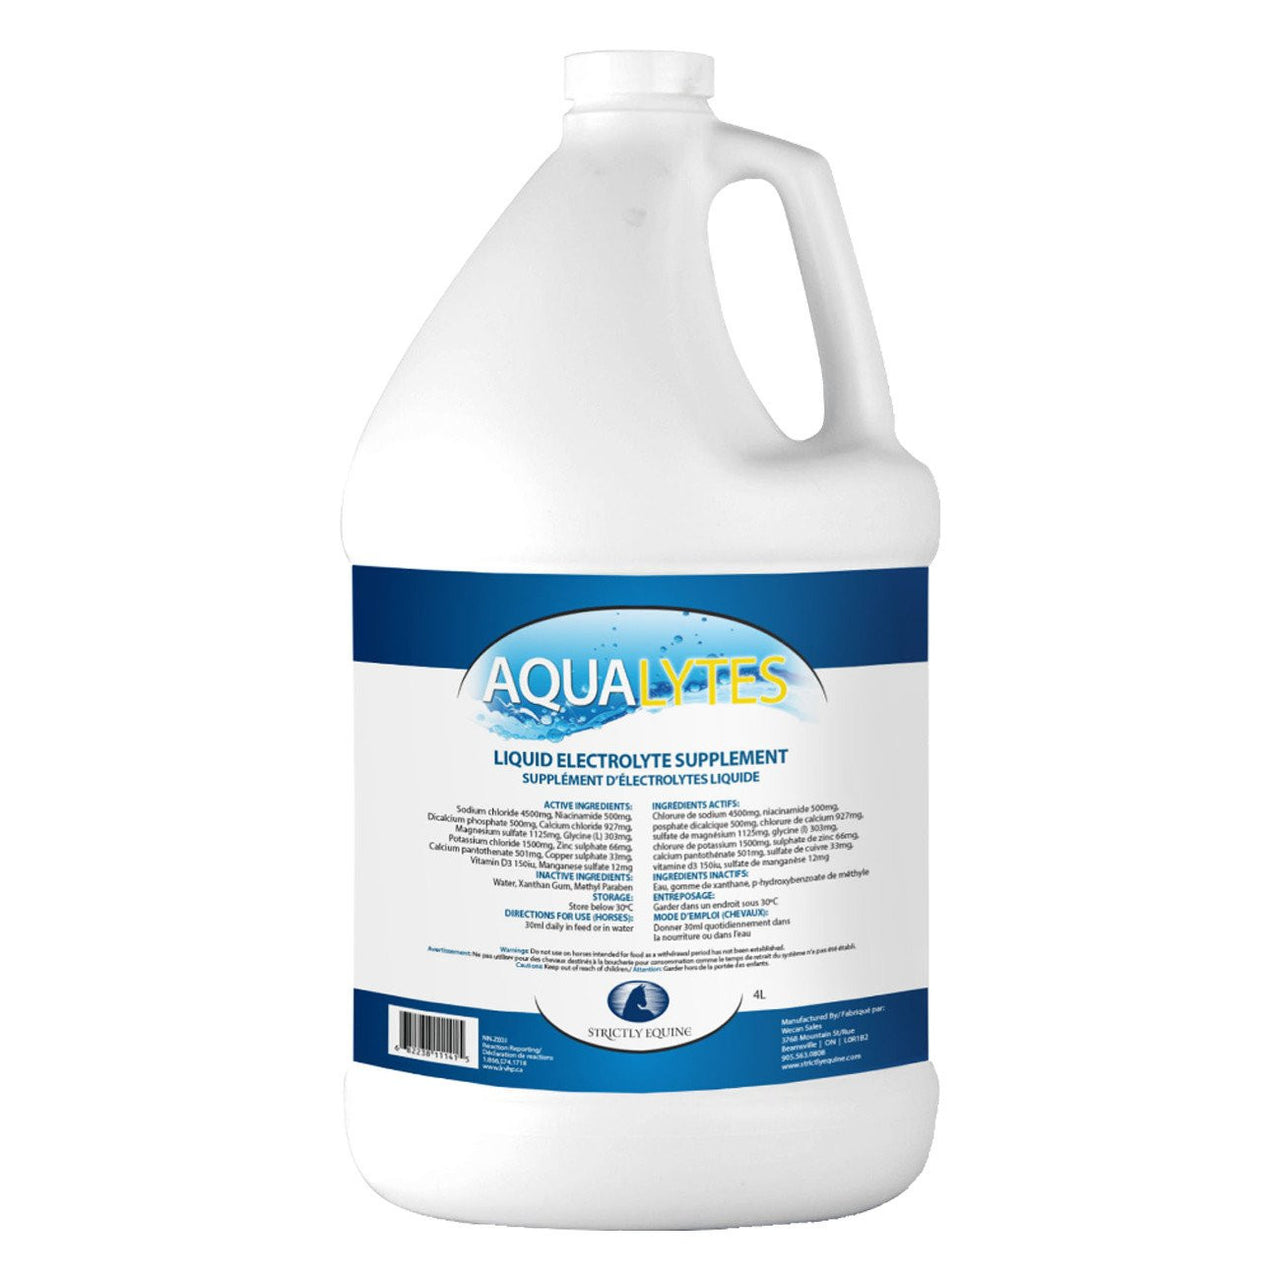 Strictly Equine Aqua Lytes 3.8L - Electrolytes Strictly Equine - Canada